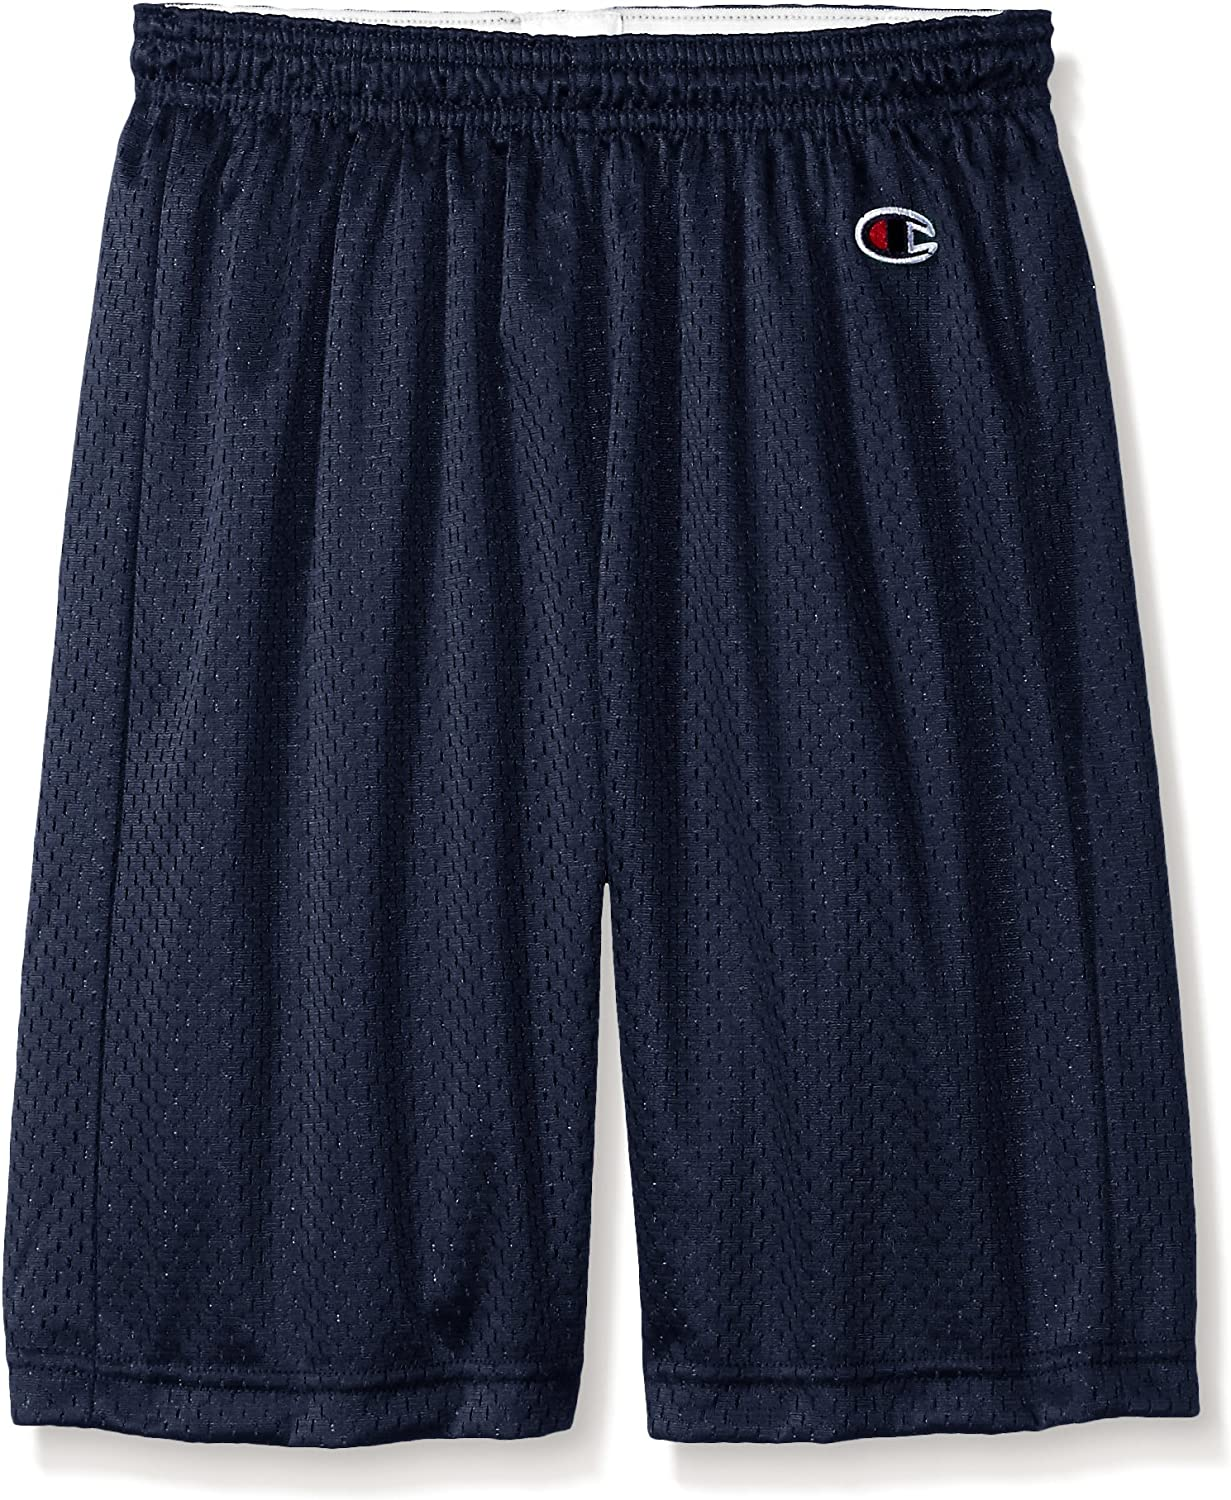 Mens or Boys Navy or Black Size Small or 14 youth Sports Shorts by Champion.